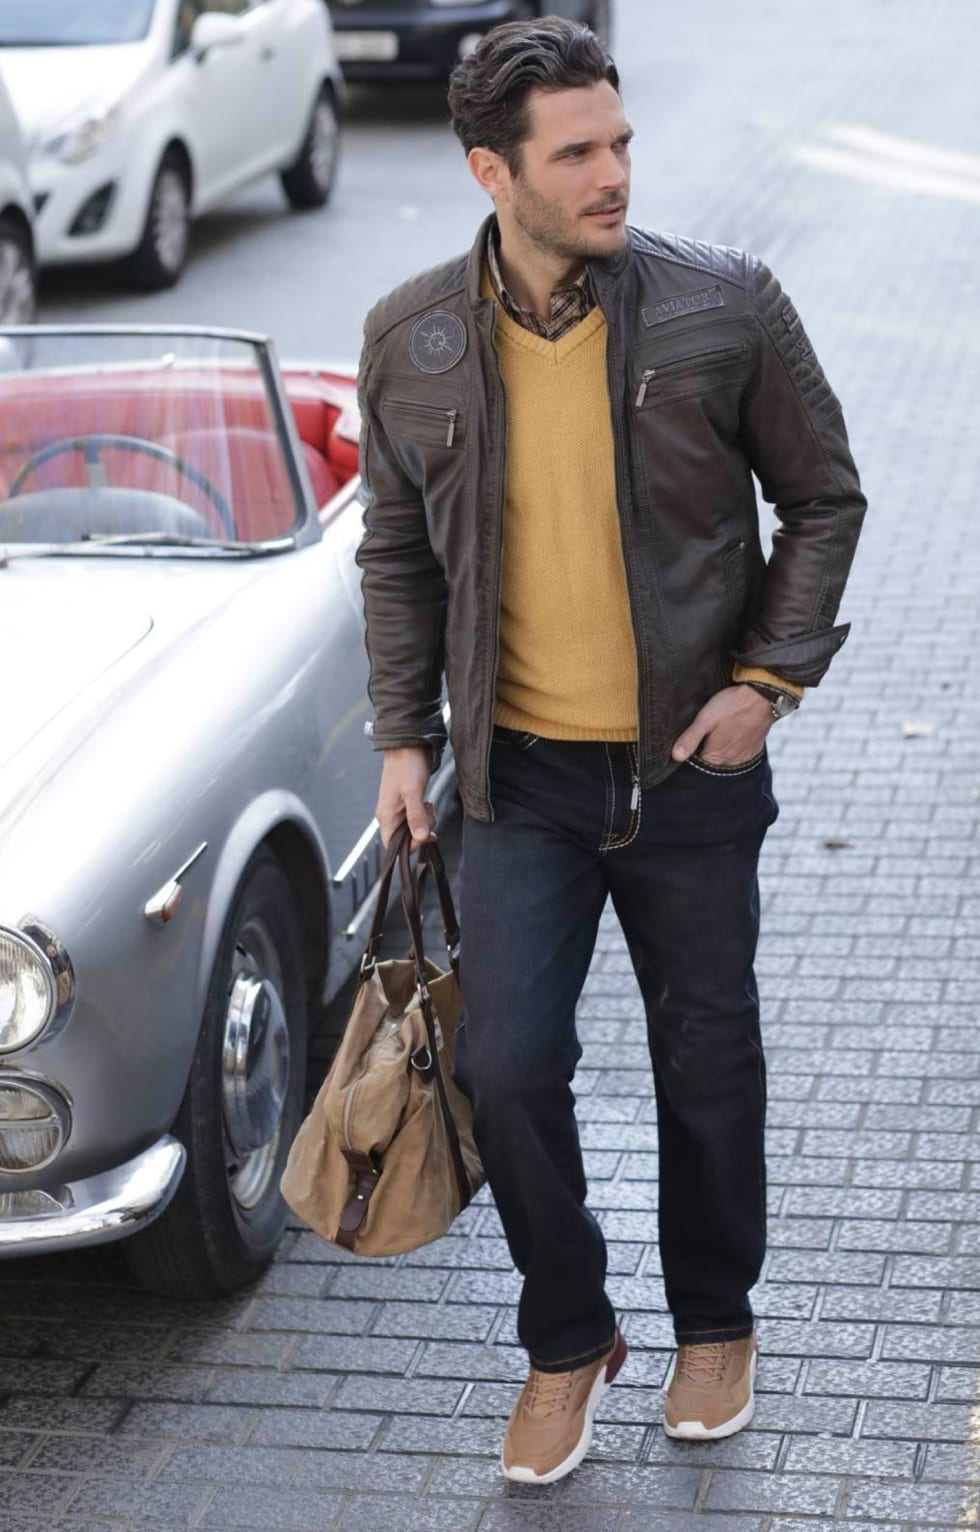 Casual_Biker_Style_AT